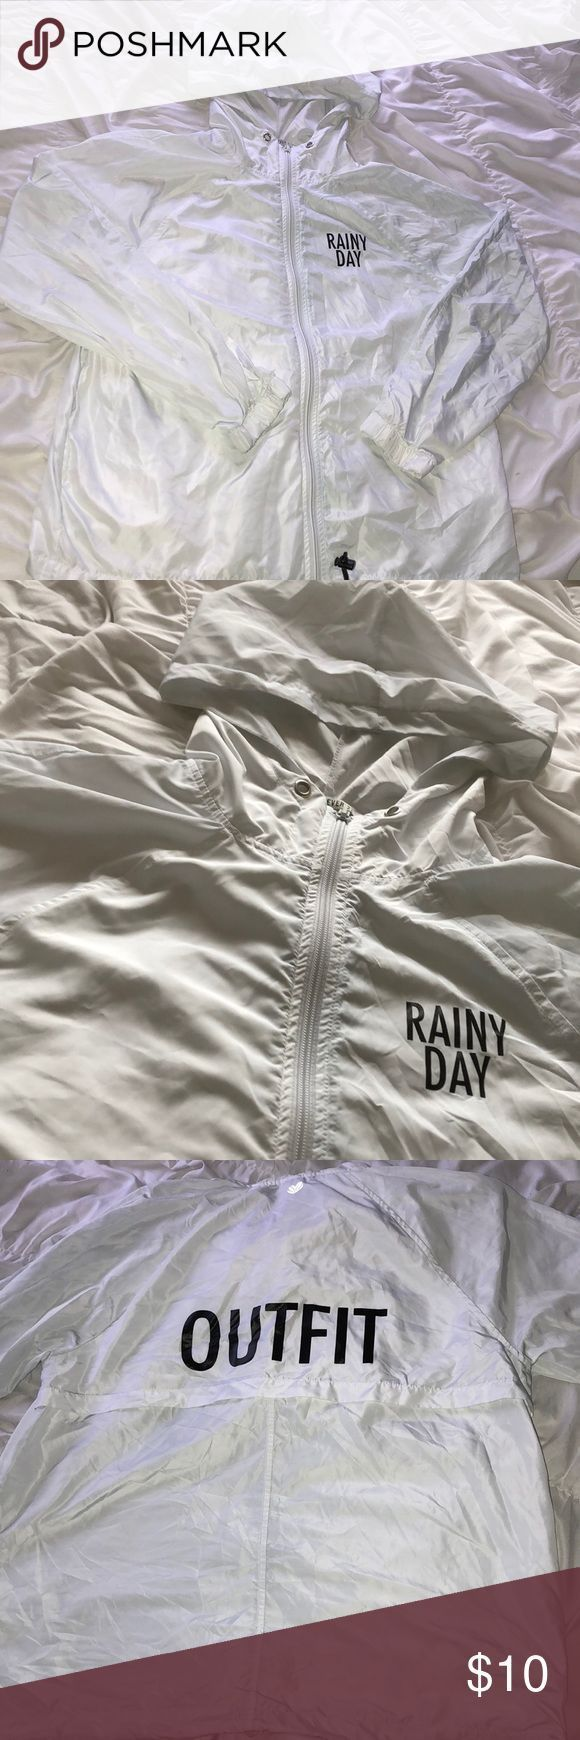 #breaker #Day #Jacket #Outfit #Rainy #Rainy Day Outfit for summer #rainydayoutfitforschool